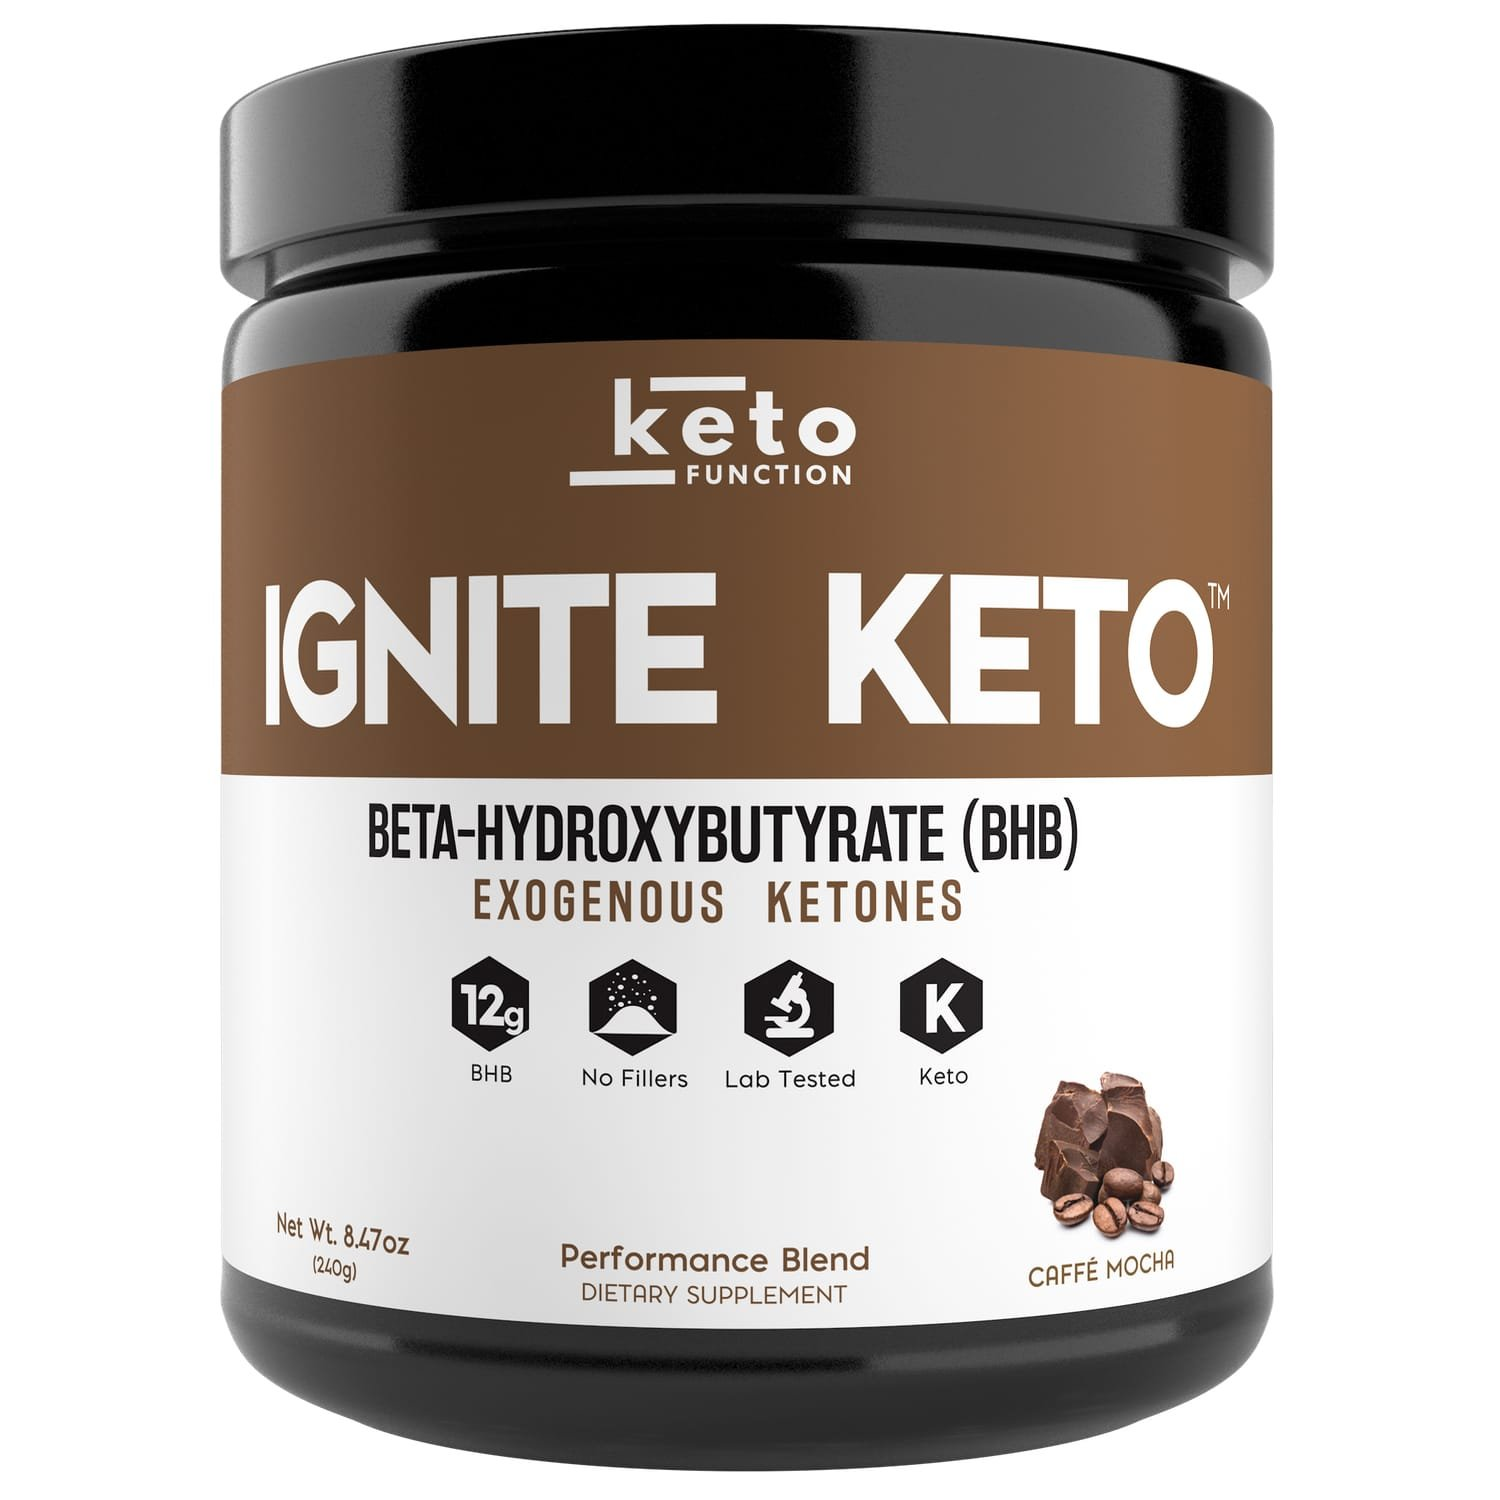 Ignite Keto Drink Instant Exogenous Ketones Since Electricity Is Not Something We Can Physically See The Ignition Supplement 12g Bhb Coffee Chocolate Ketone Salts Fuel Ketosis